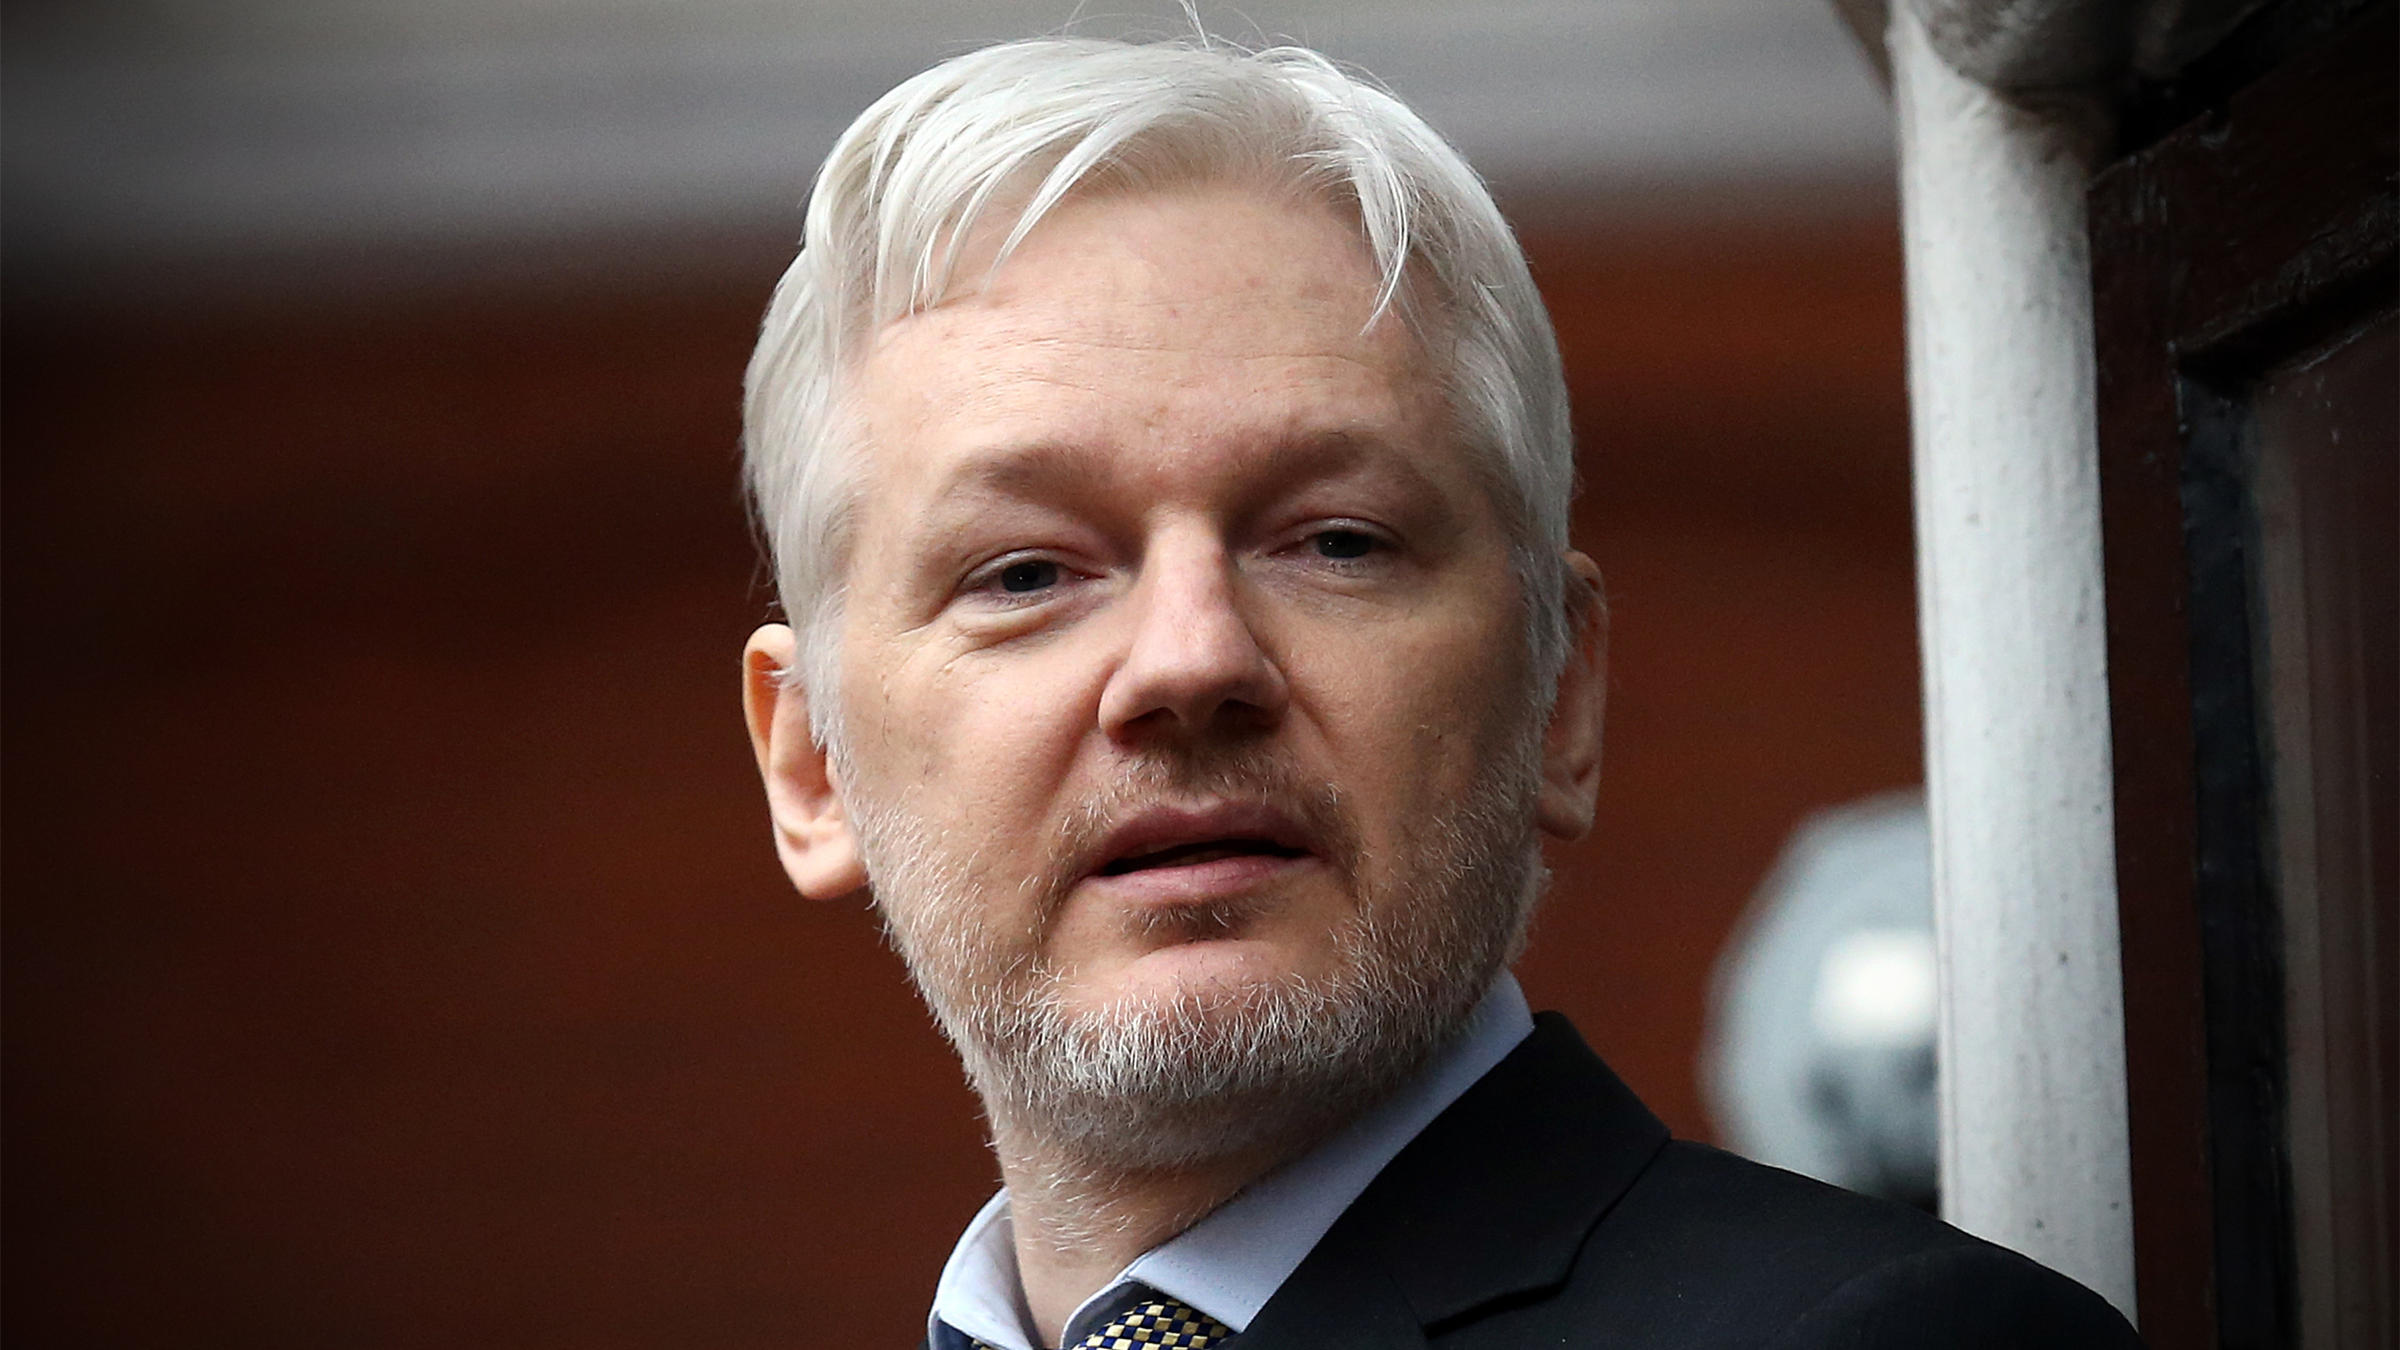 United Kingdom  says Assange will be arrested if he leaves Ecuador's embassy